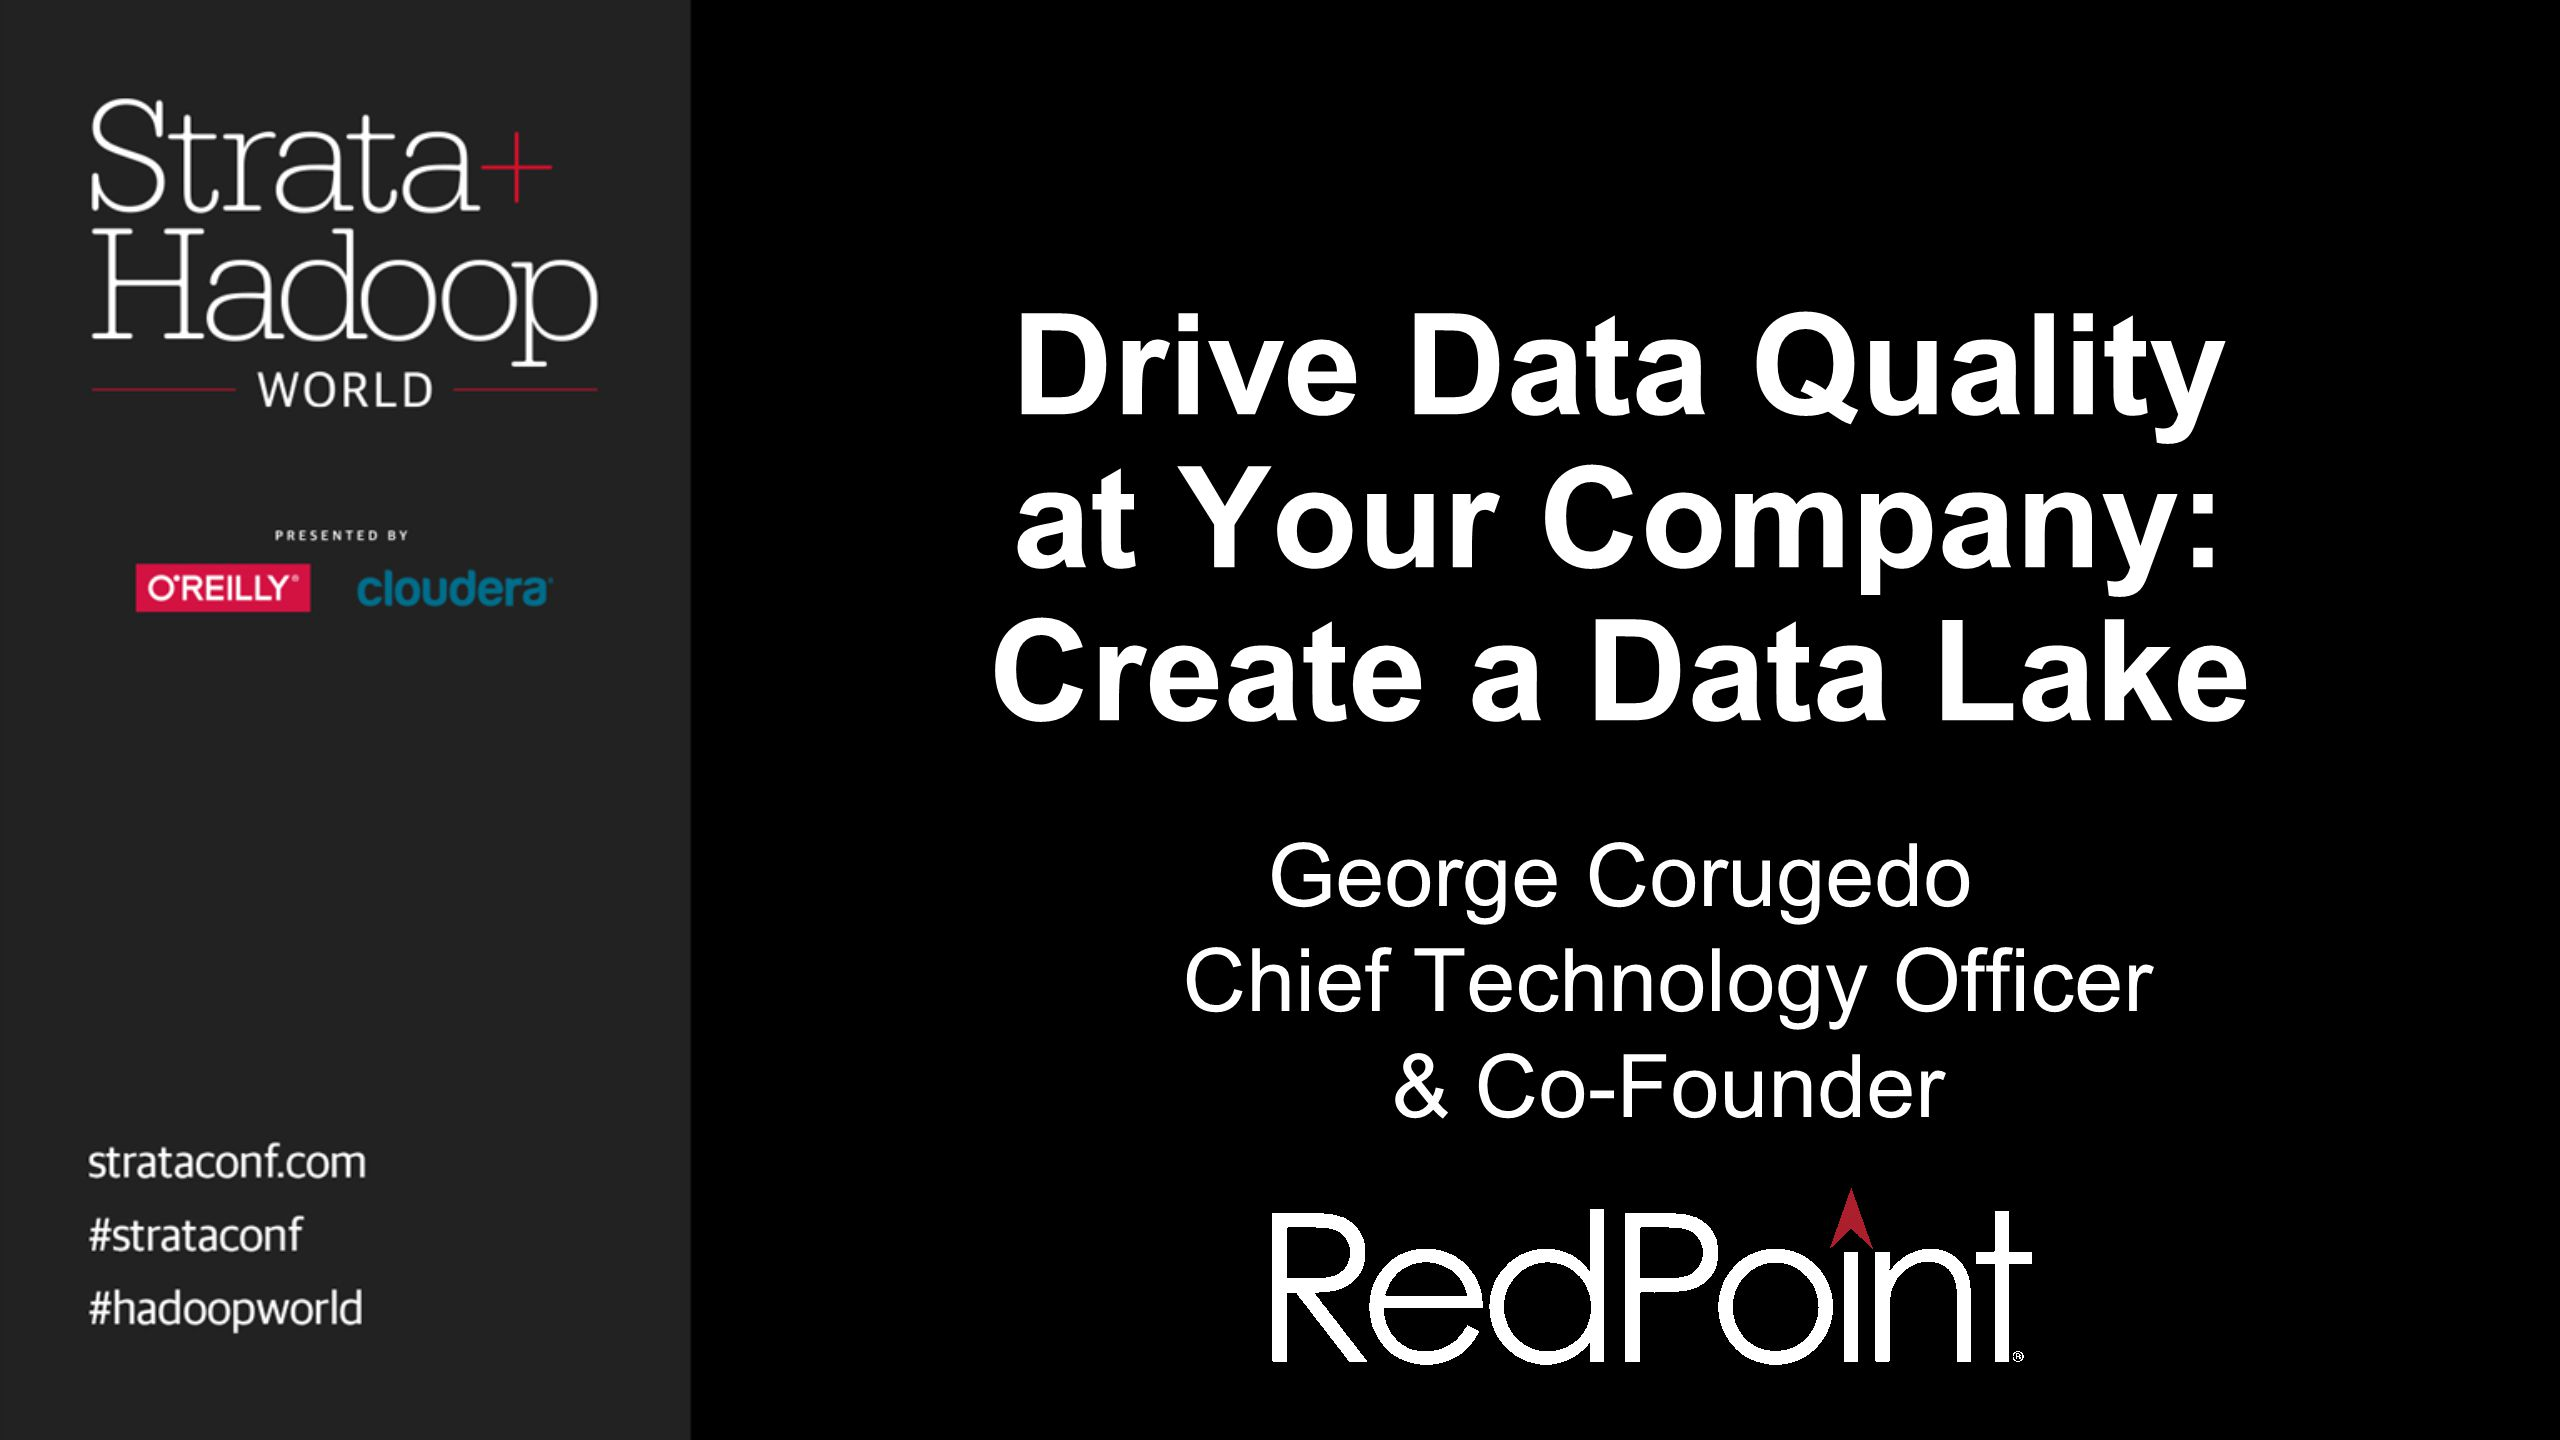 Drive Data Quality at Your Company: Create a Data Lake George Corugedo Chief Technology Officer & Co-Founder